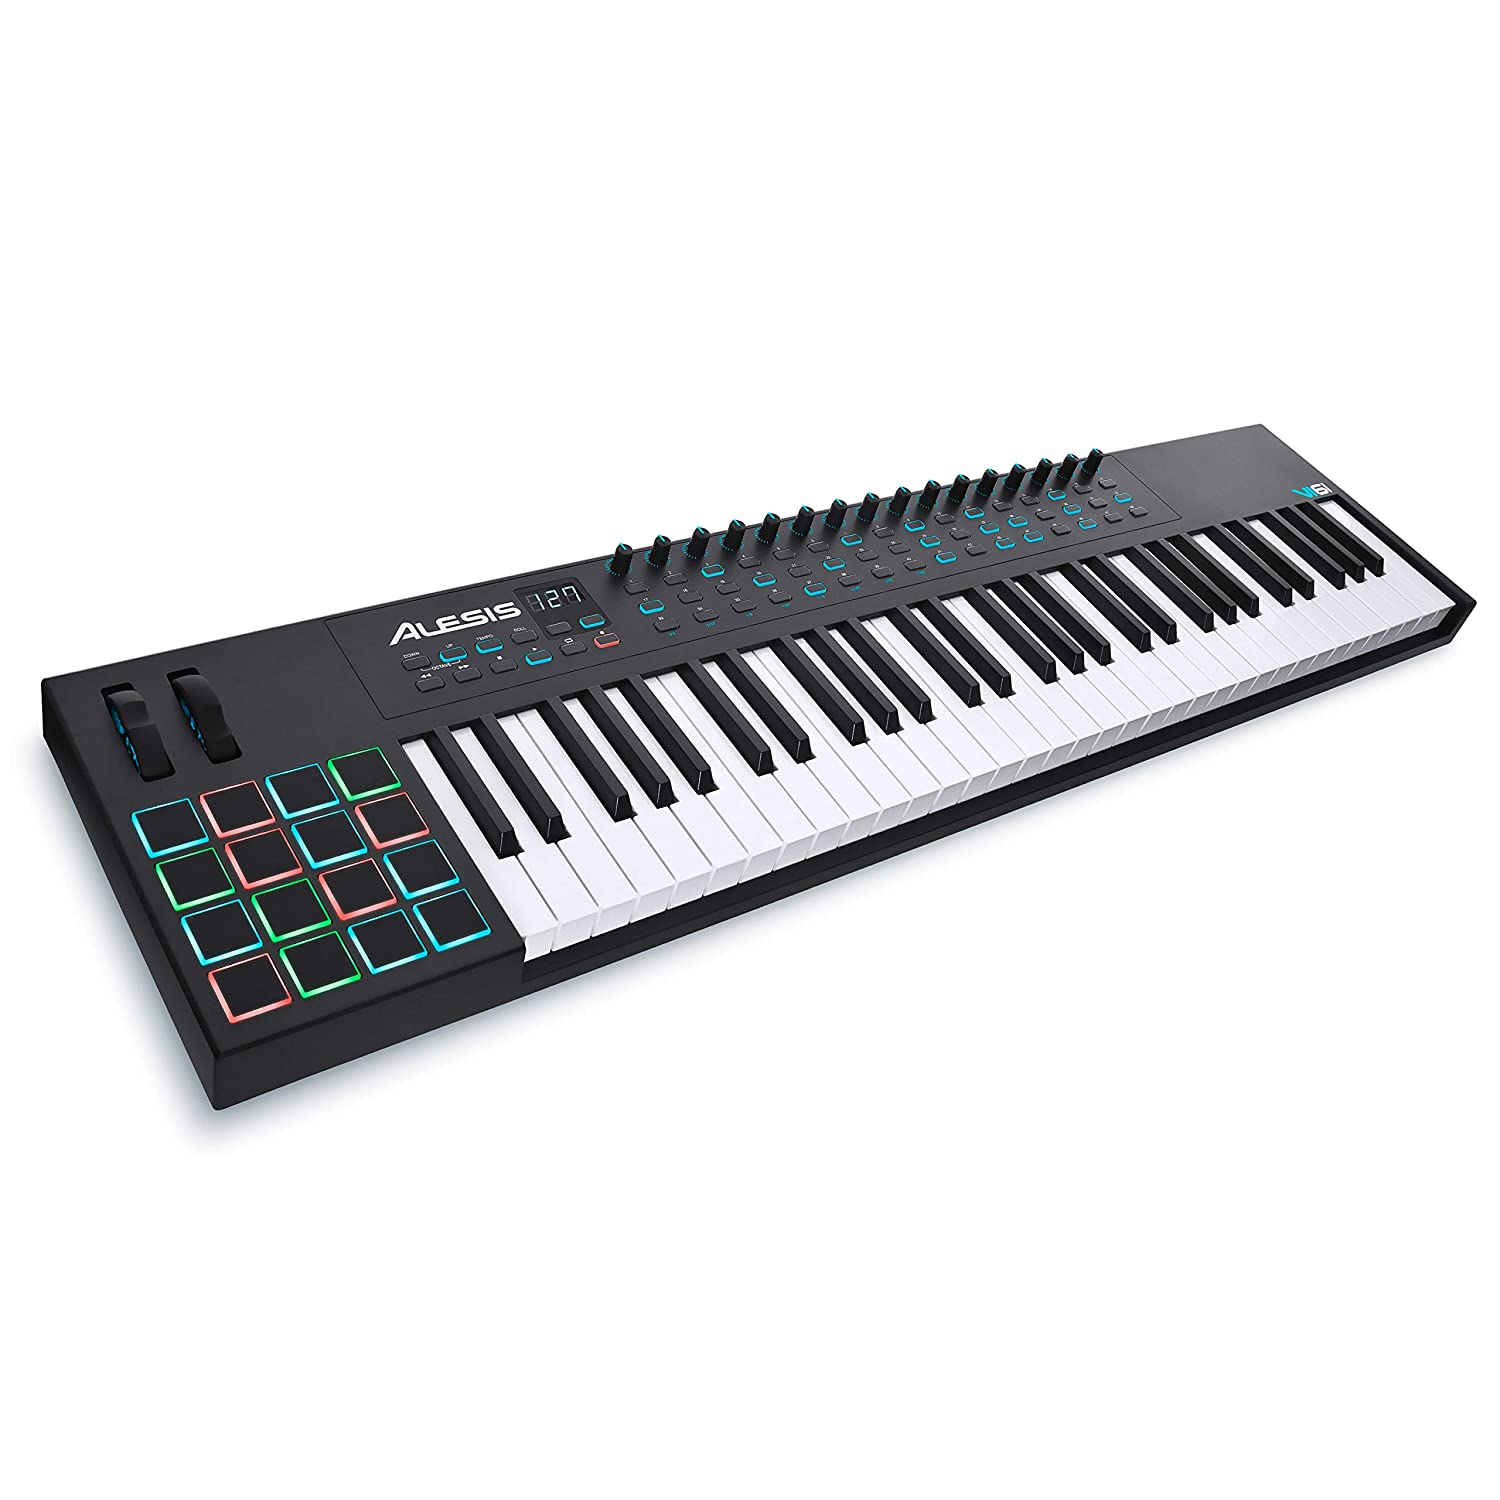 Alesis VI61 61-Key USB MIDI Keyboard Controller with 16 Pads, 16 Assignable  Knobs, 48 Buttons and 5-Pin MIDI Out Plus Production Software Included